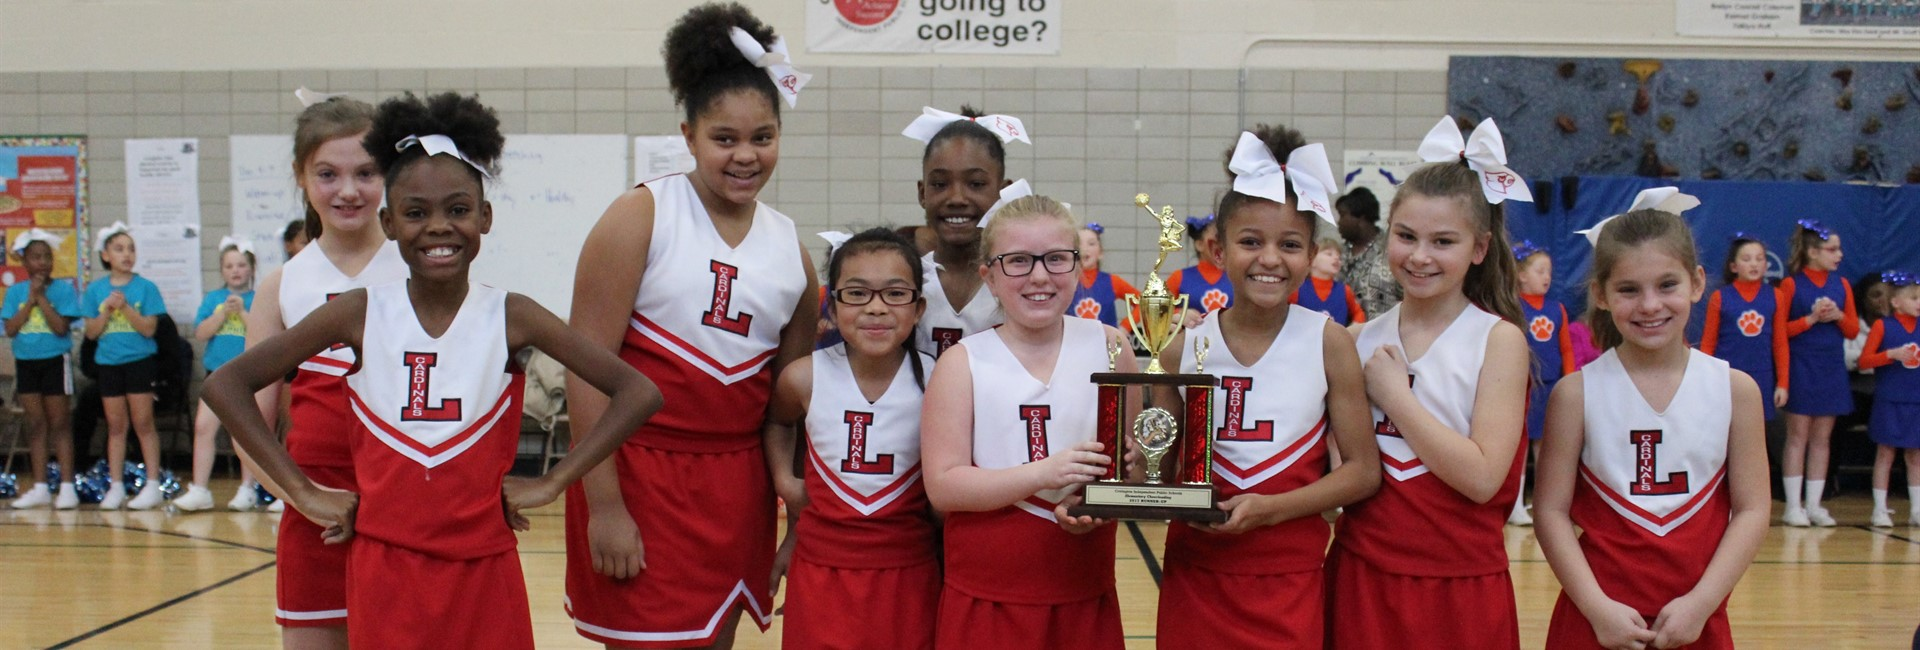 Latonia Elementary cheerleaders win 2nd place in the cheerleading competition.